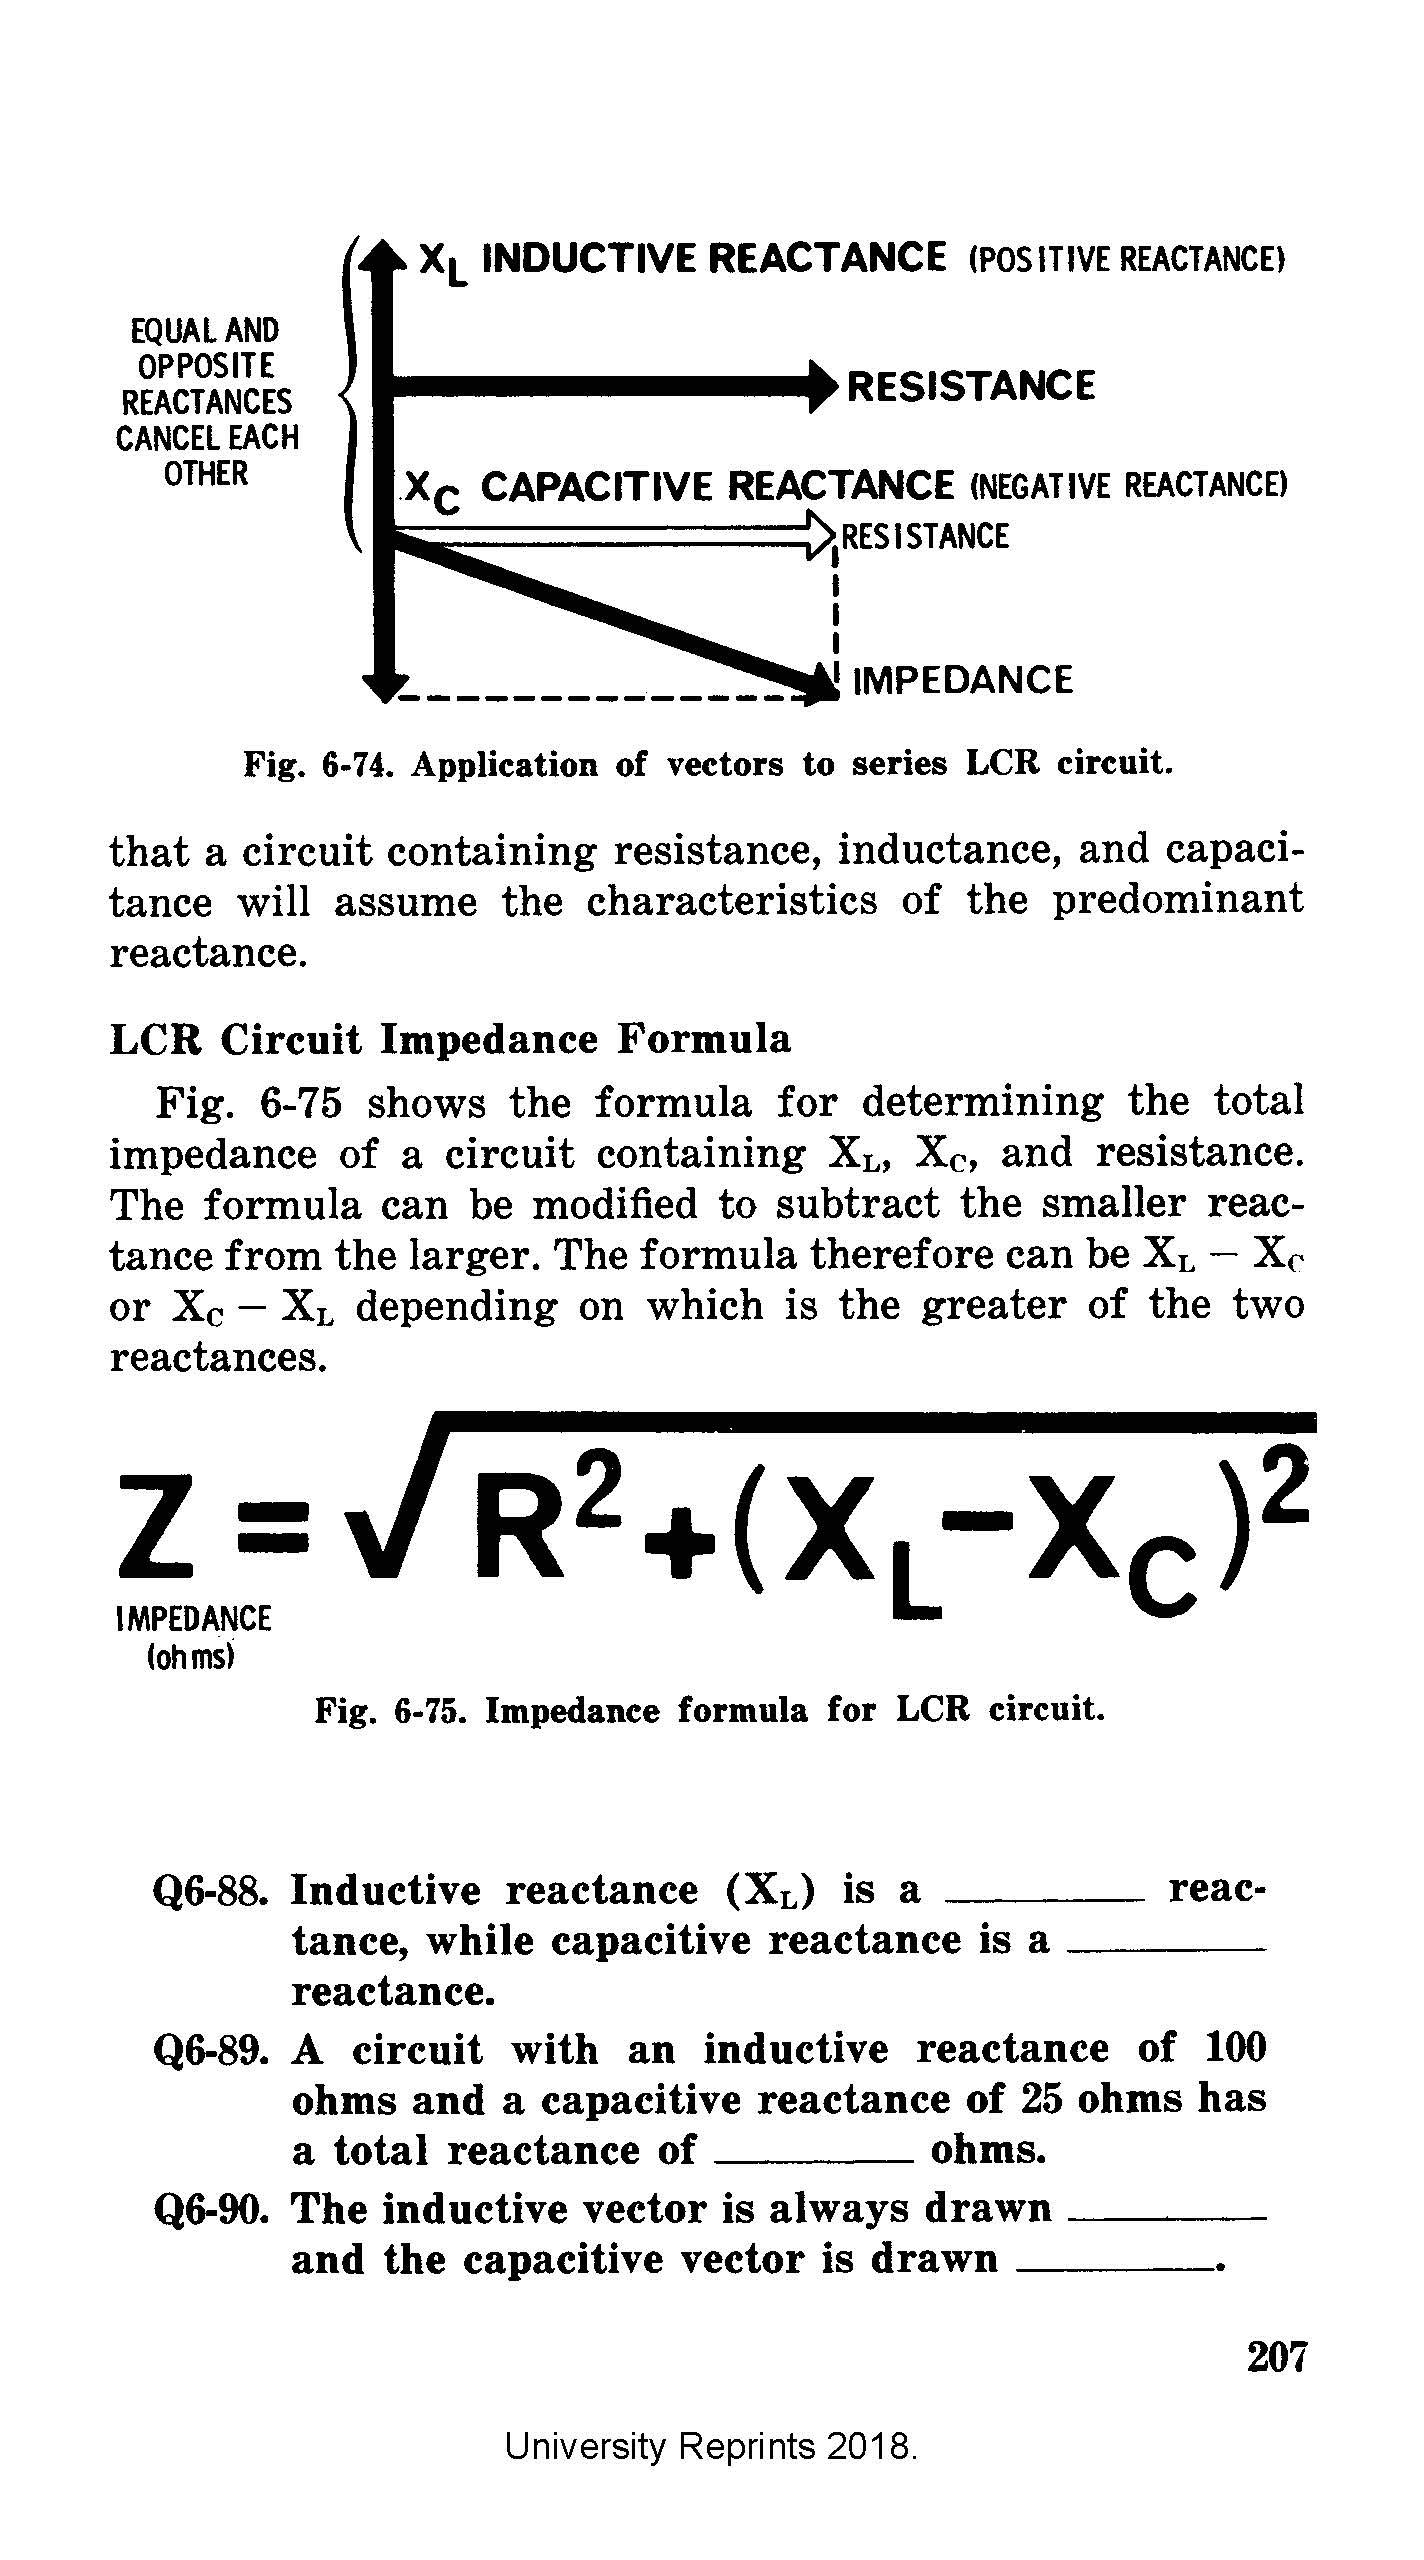 Transistor Fundamentals Volume 1 Basic Semiconductor And Circuit Electriccircuit Reactance Impedance Capacitive Principles A Programmed Learning Course By Robert J Brite Large Print